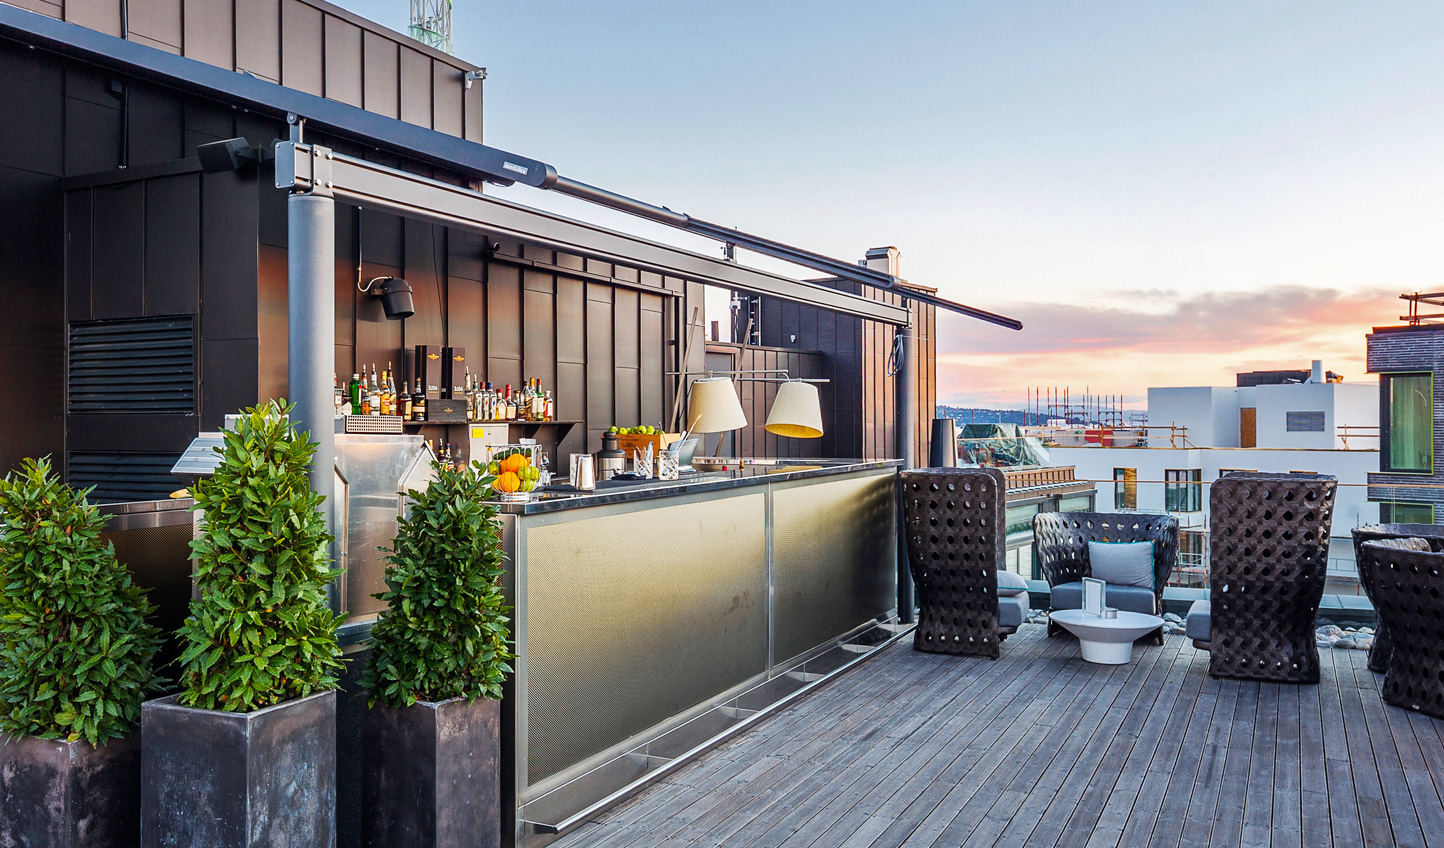 Head upstairs for a cocktail with views across the city